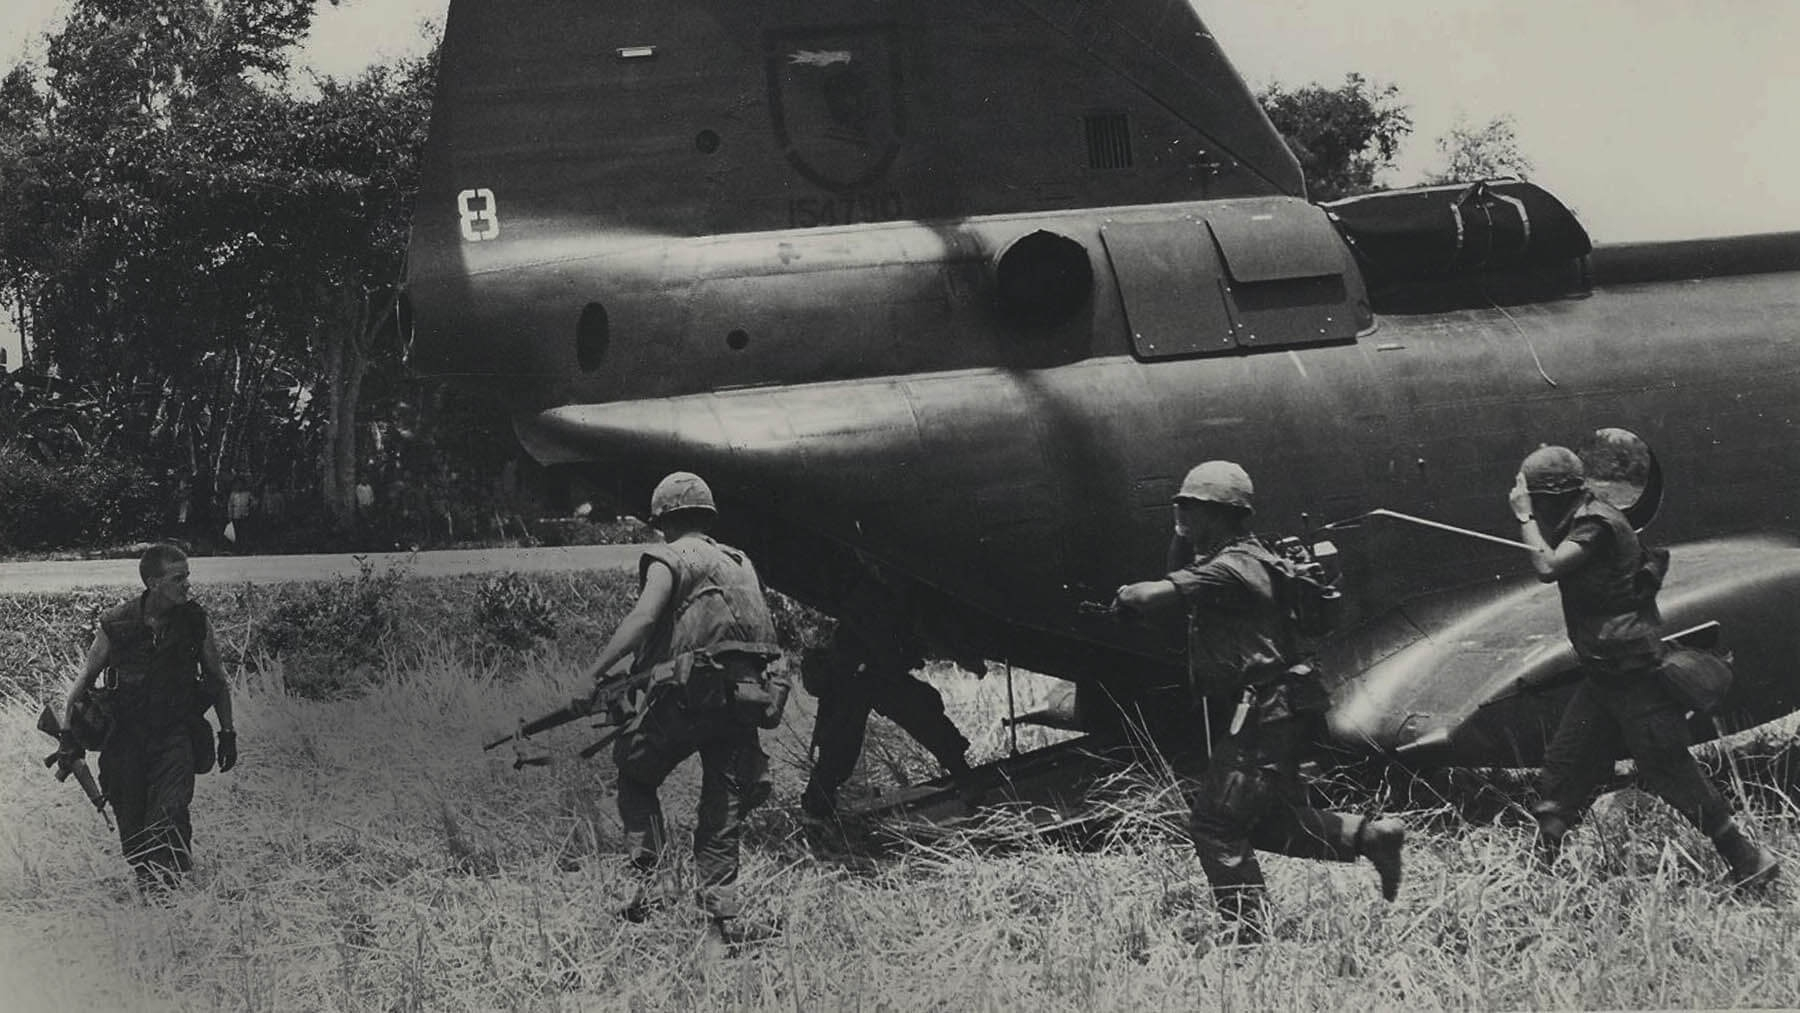 In this black and white photo from 1968, Marines board an aircraft in Vietnam.